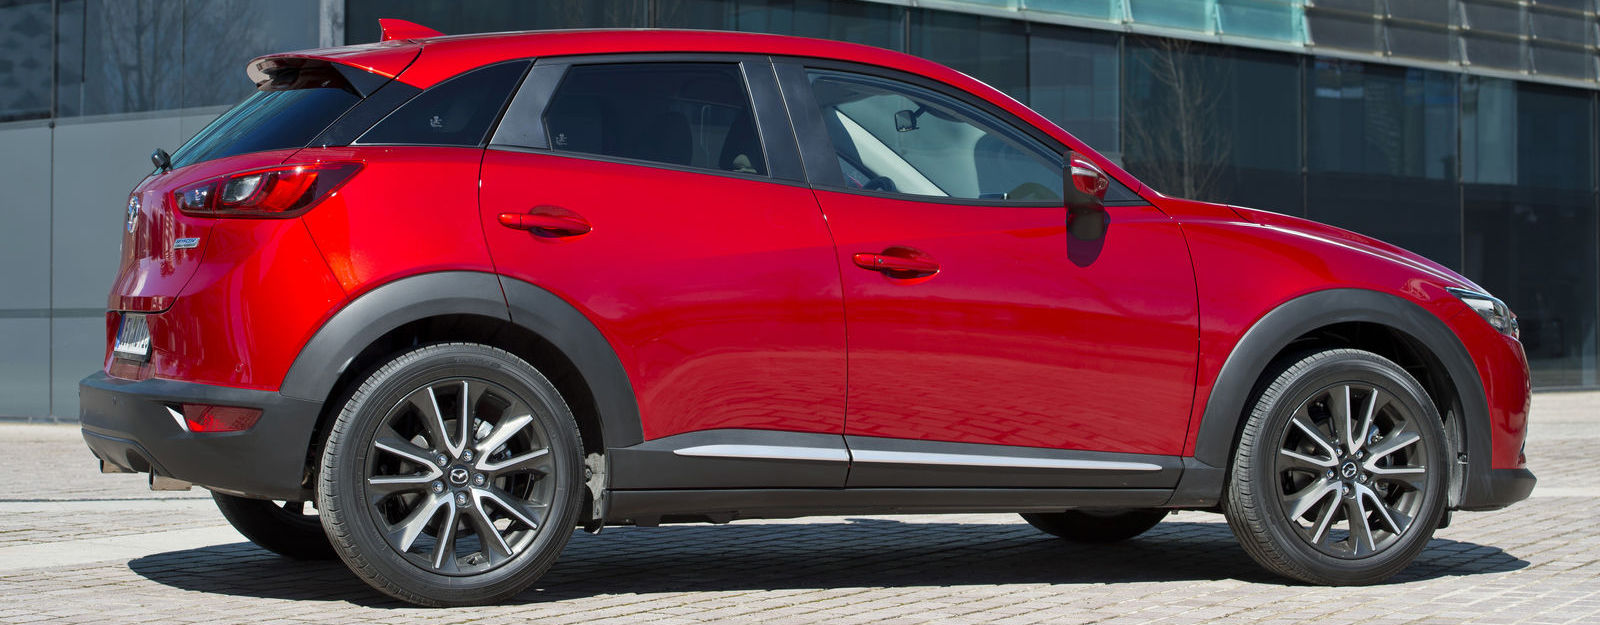 Dimensions Of Mazda Cx3 >> Mazda CX-3 sizes and dimensions guide | carwow